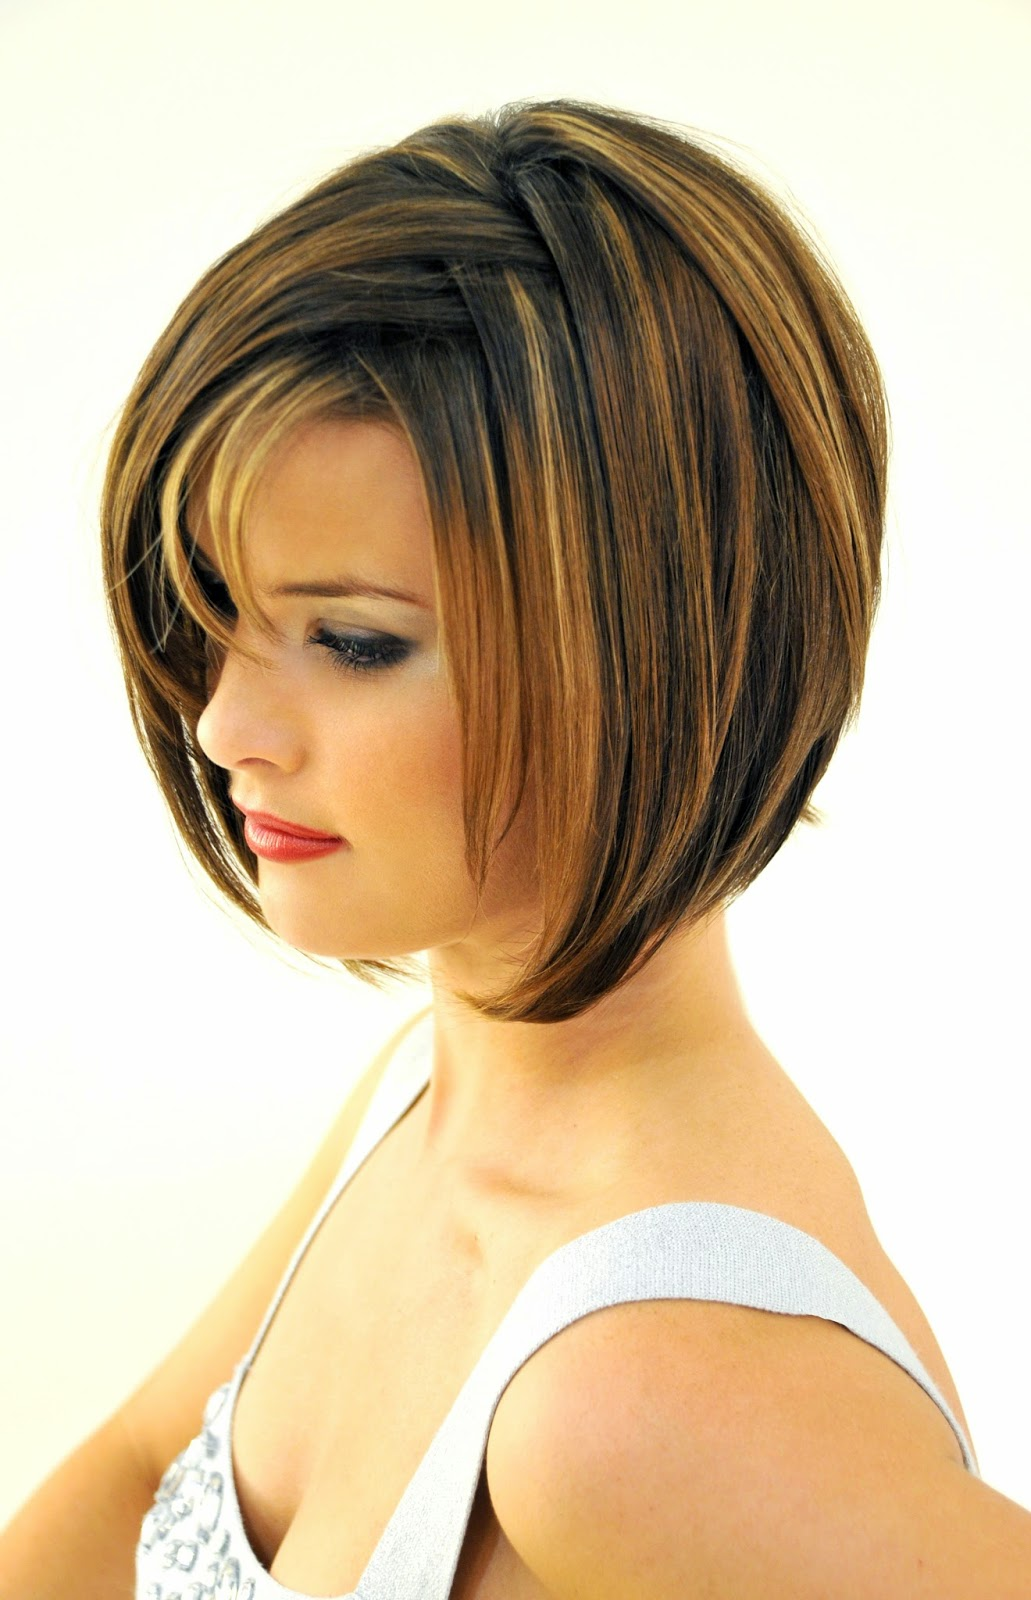 layered bob hairstyles for chic and beautiful looks the haircut web. Black Bedroom Furniture Sets. Home Design Ideas